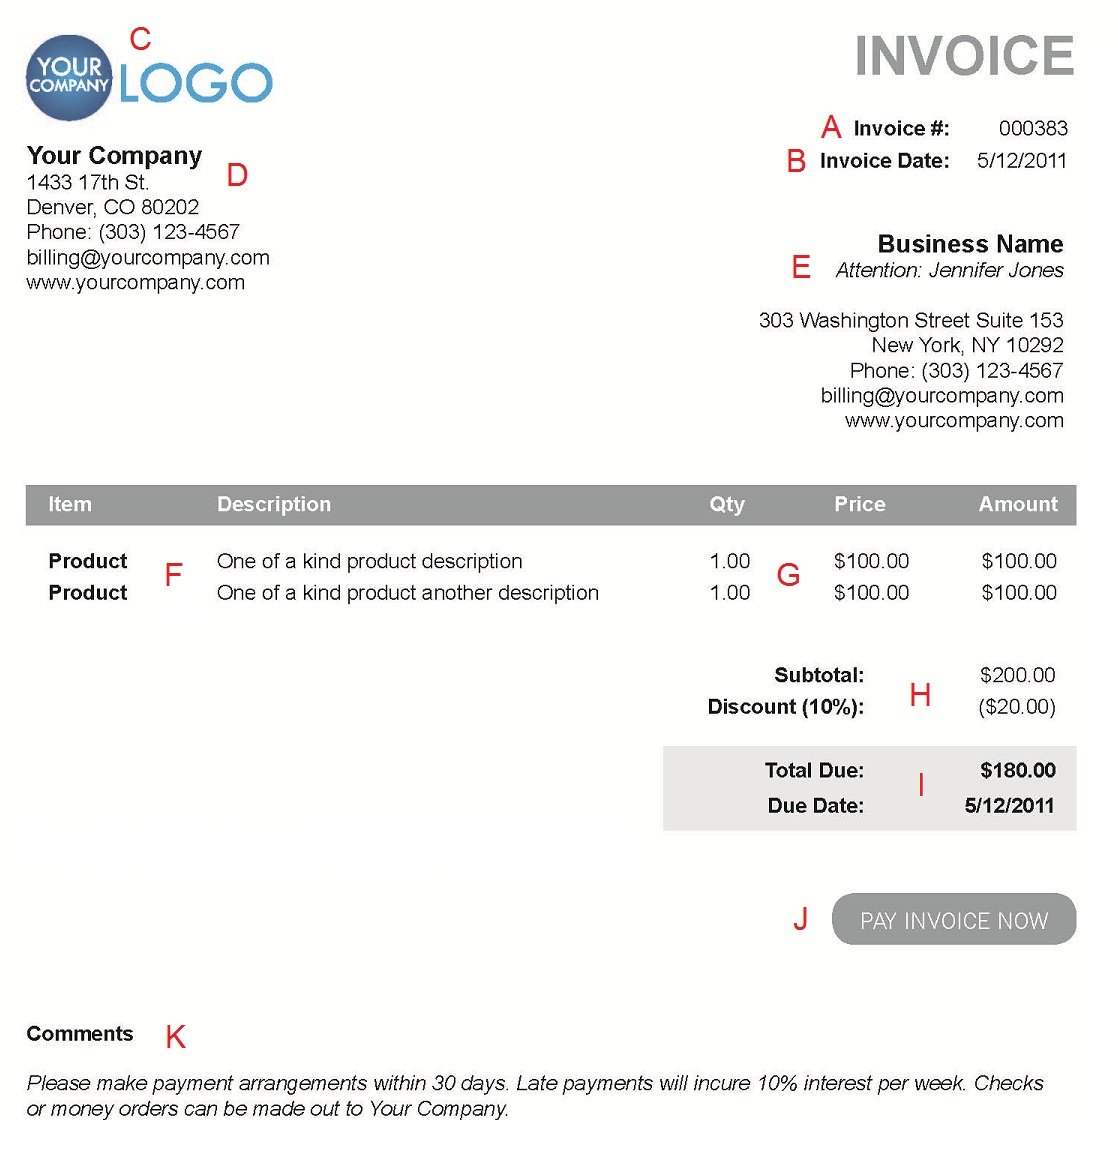 Weirdmailus  Prepossessing The  Different Sections Of An Electronic Payment Invoice With Goodlooking A  With Captivating I Receipt Notice Also Cab Receipt In Addition Taxi Receipts And Bed Bath And Beyond Return Policy No Receipt As Well As Lowes Return Without Receipt Limit Additionally In Receipt From Paysimplecom With Weirdmailus  Goodlooking The  Different Sections Of An Electronic Payment Invoice With Captivating A  And Prepossessing I Receipt Notice Also Cab Receipt In Addition Taxi Receipts From Paysimplecom